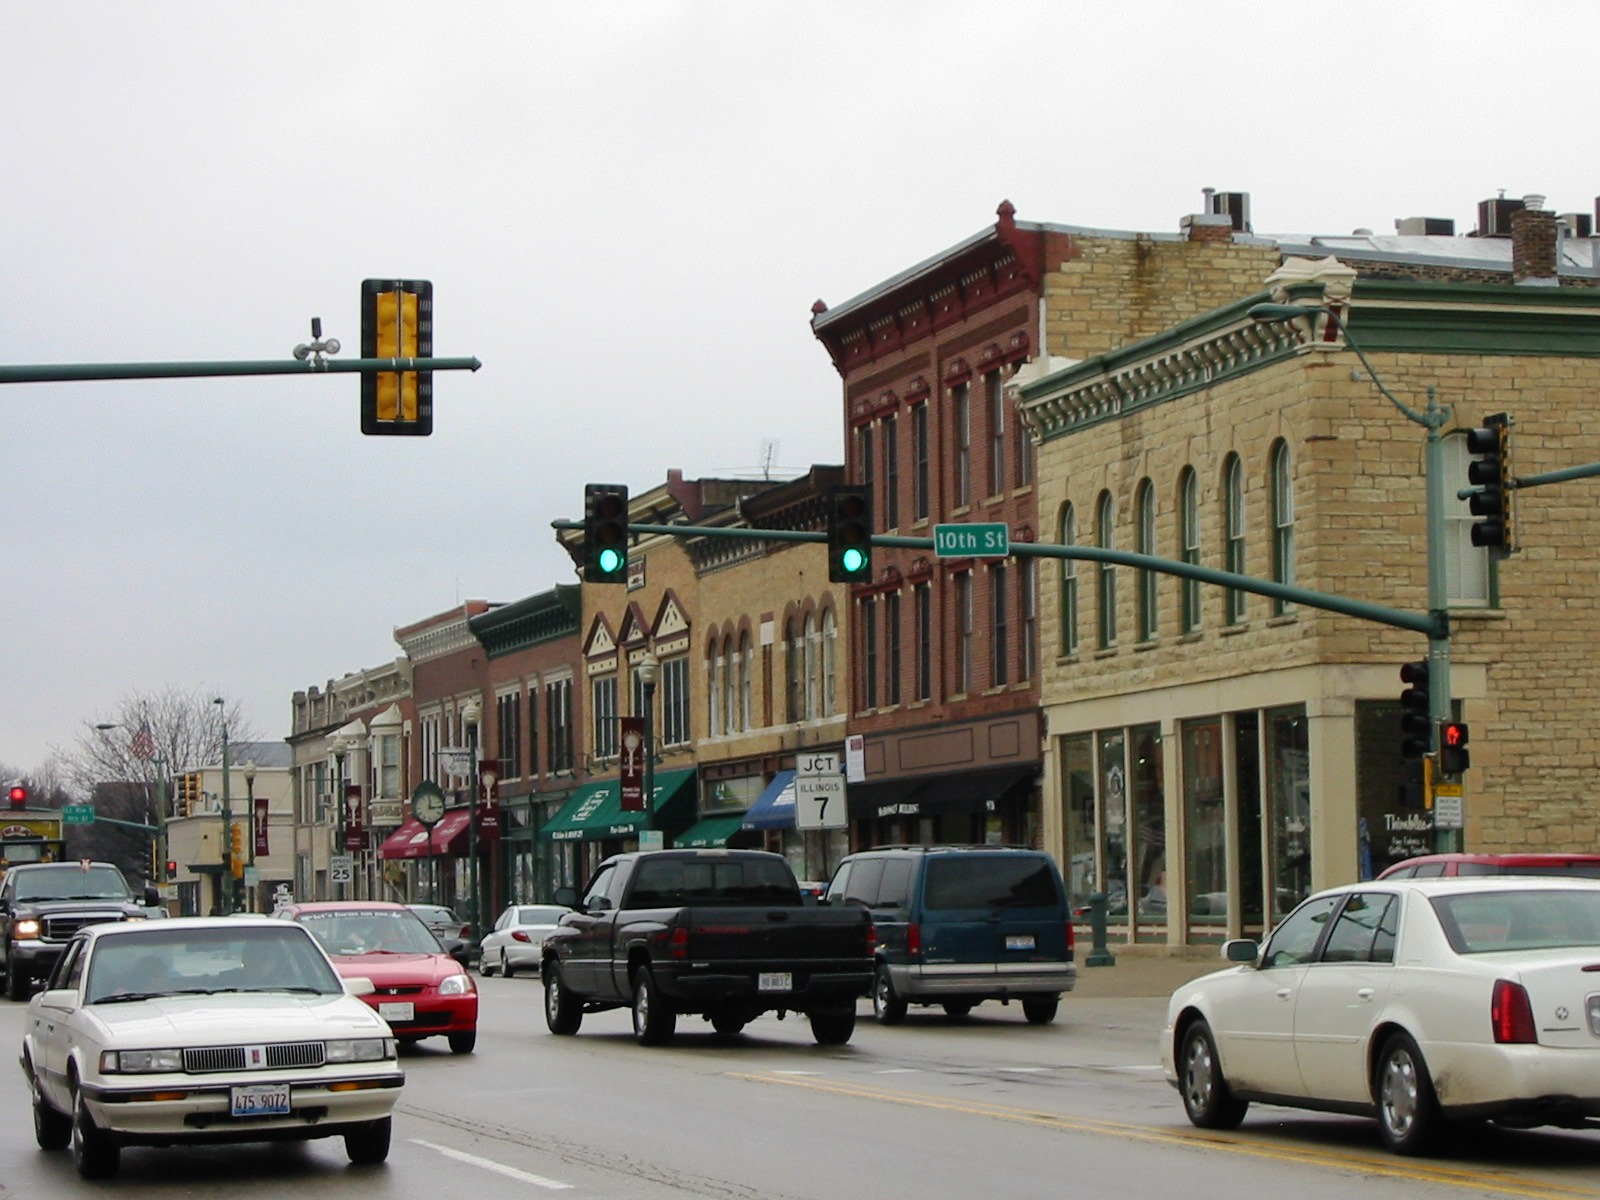 The Lockport Downtown Historic District features substantial limestone and brick buildings, which help make Lockport one of the best preserved canal towns in the country.